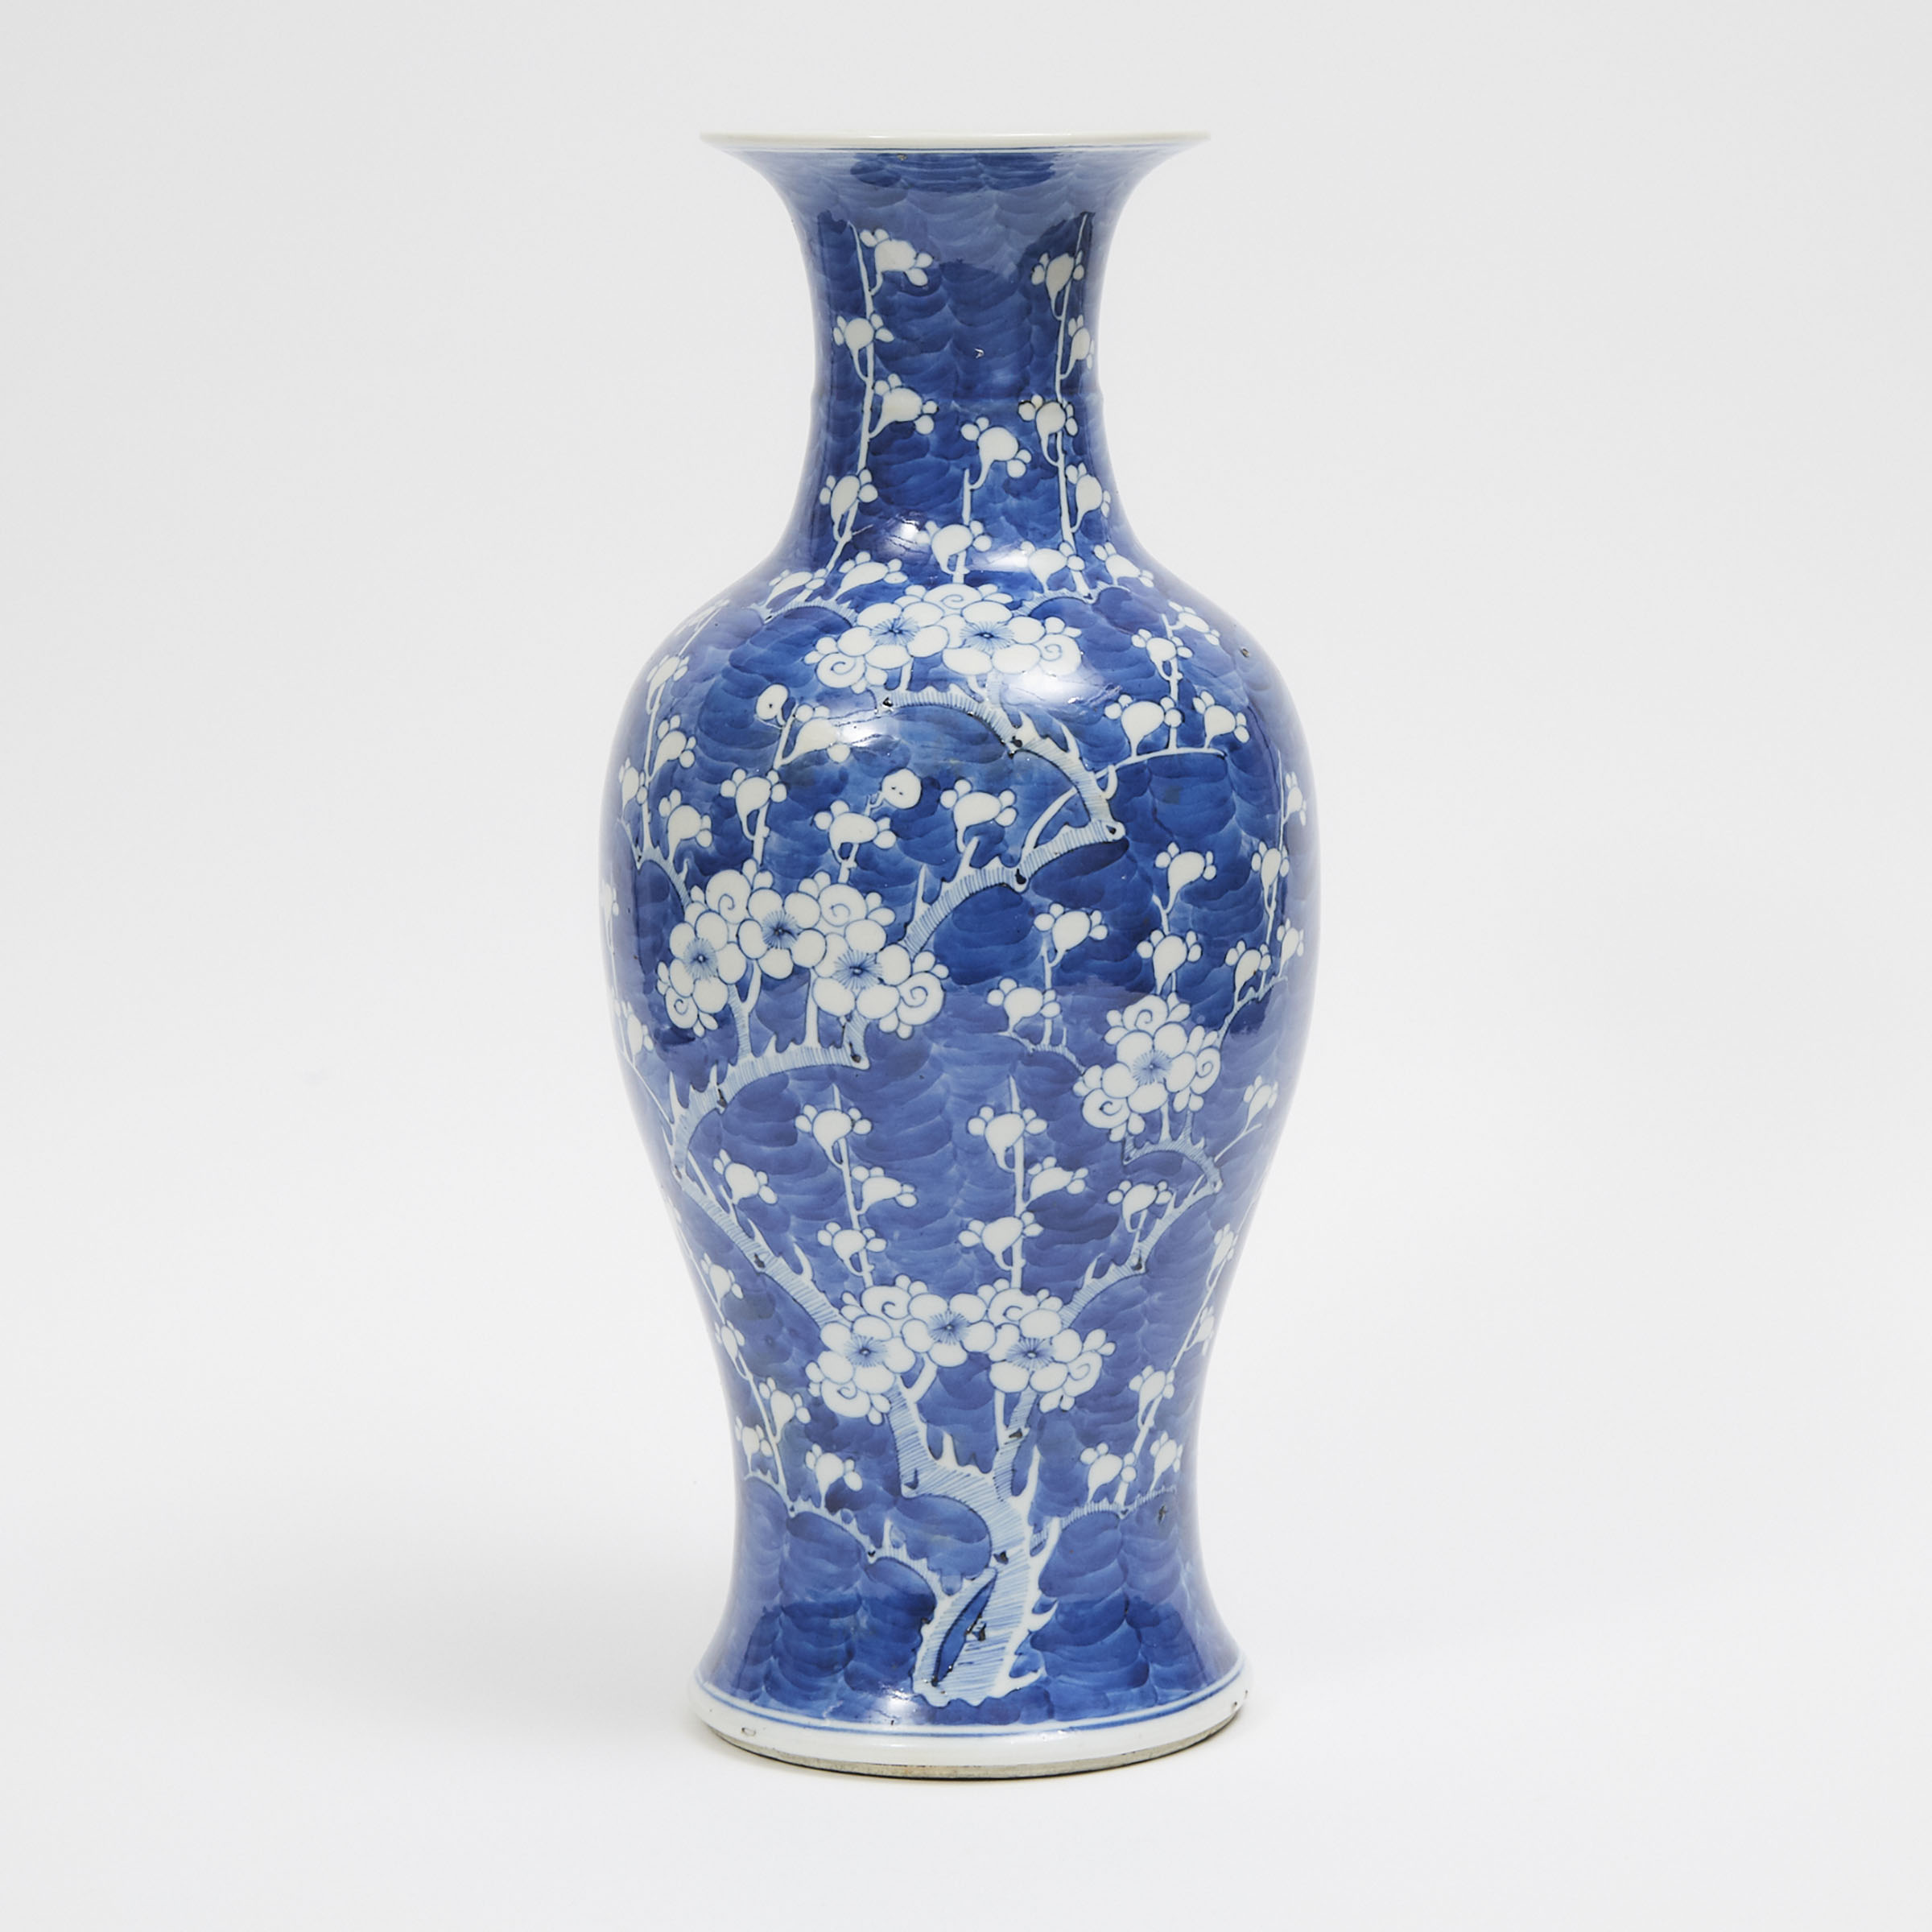 A Blue and White Porcelain 'Prunus' Vase, Qing Dynasty